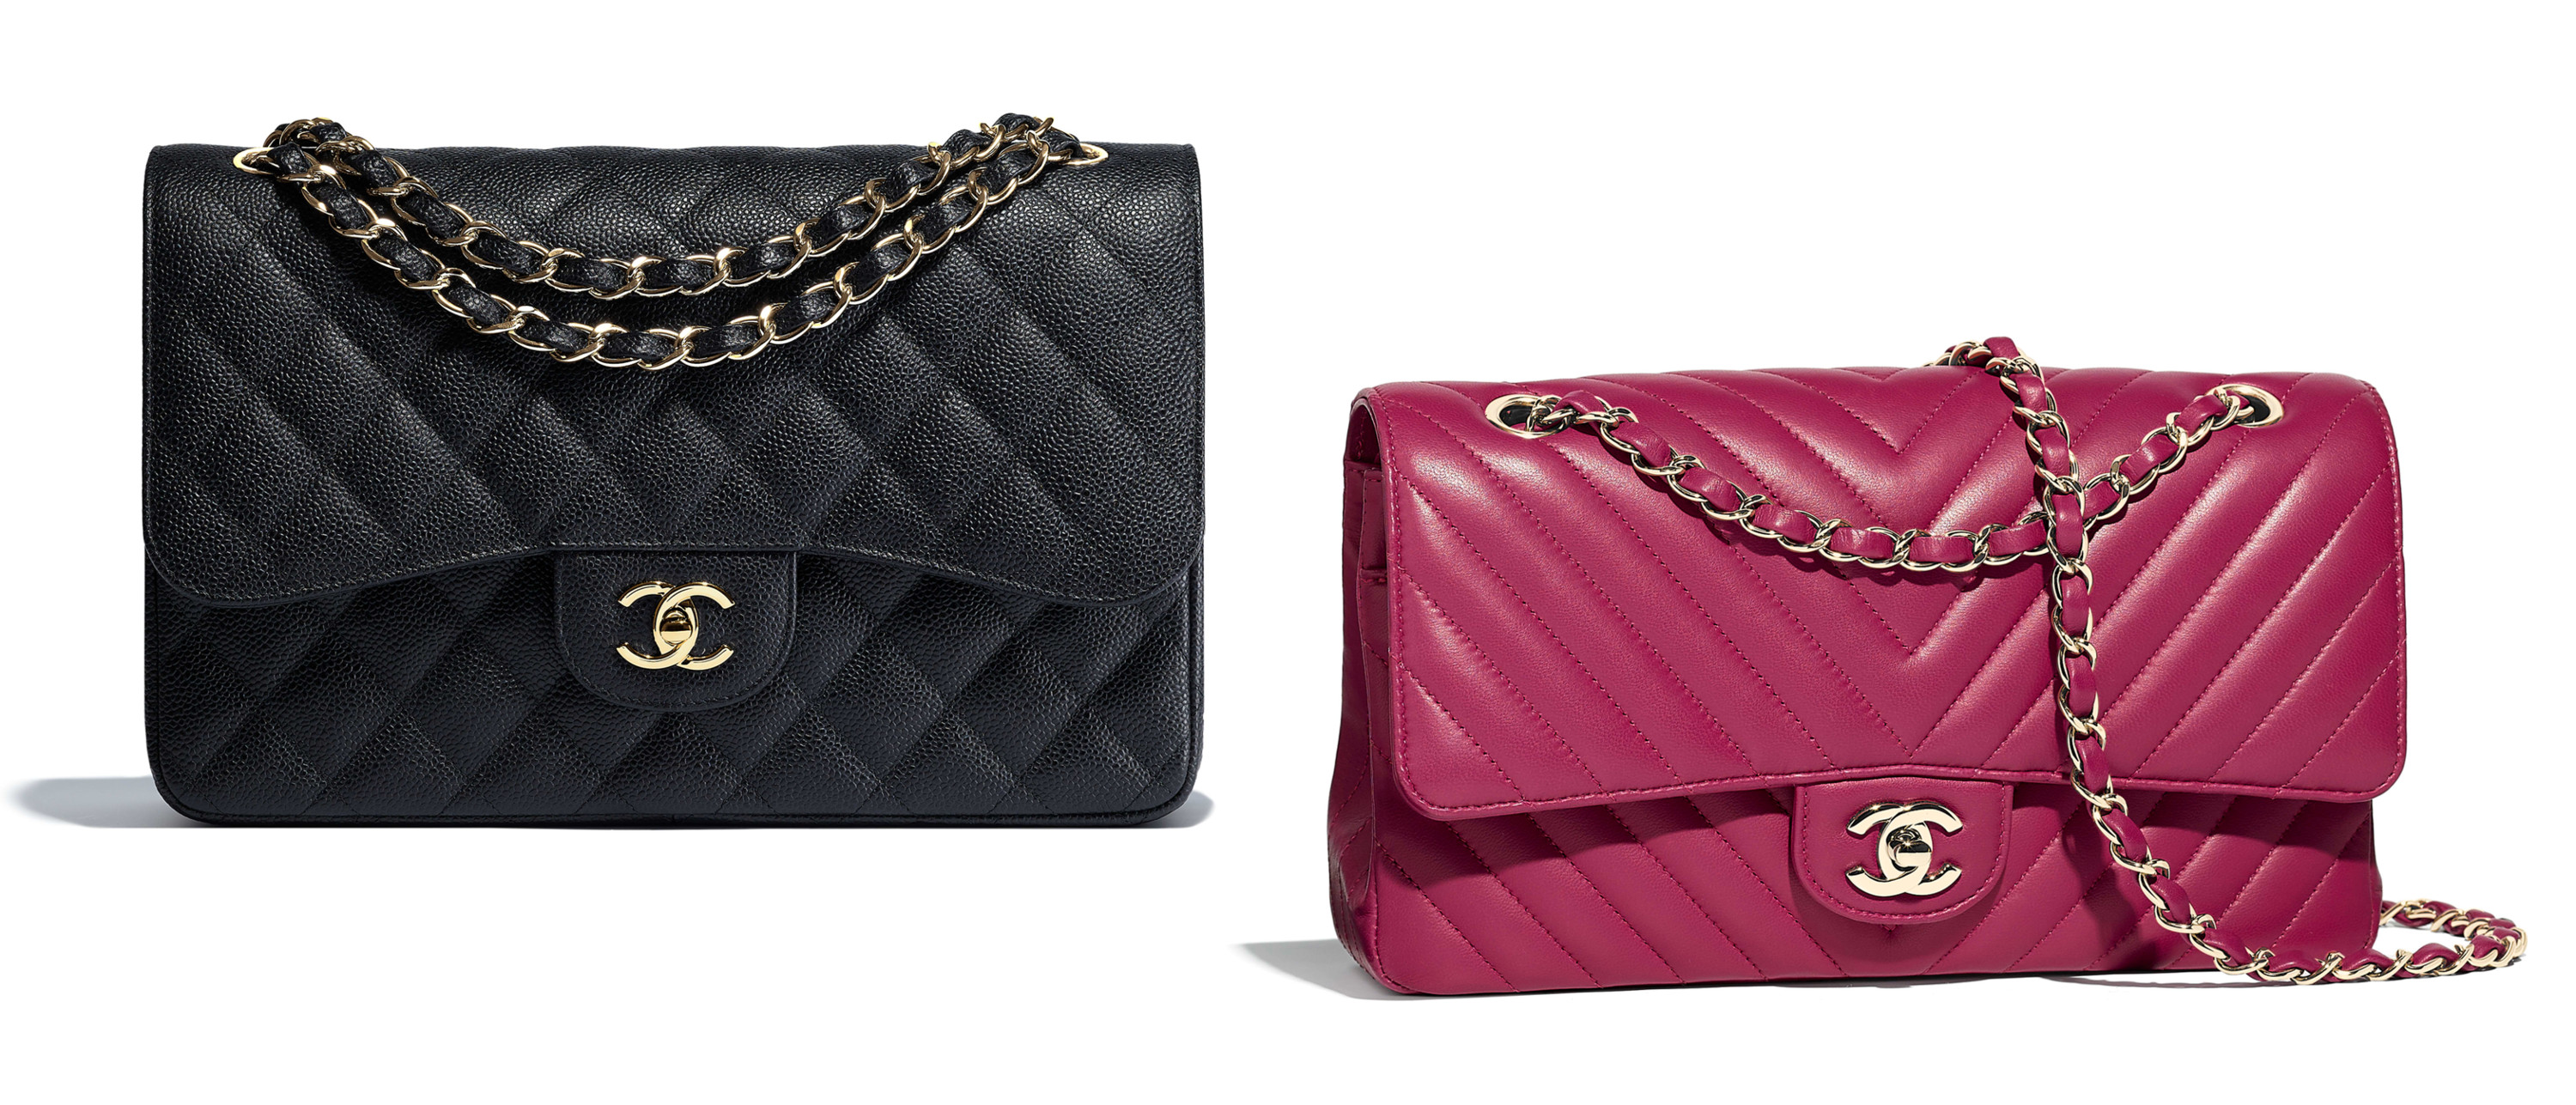 Chanel classic flap bag black quilted pink chevron